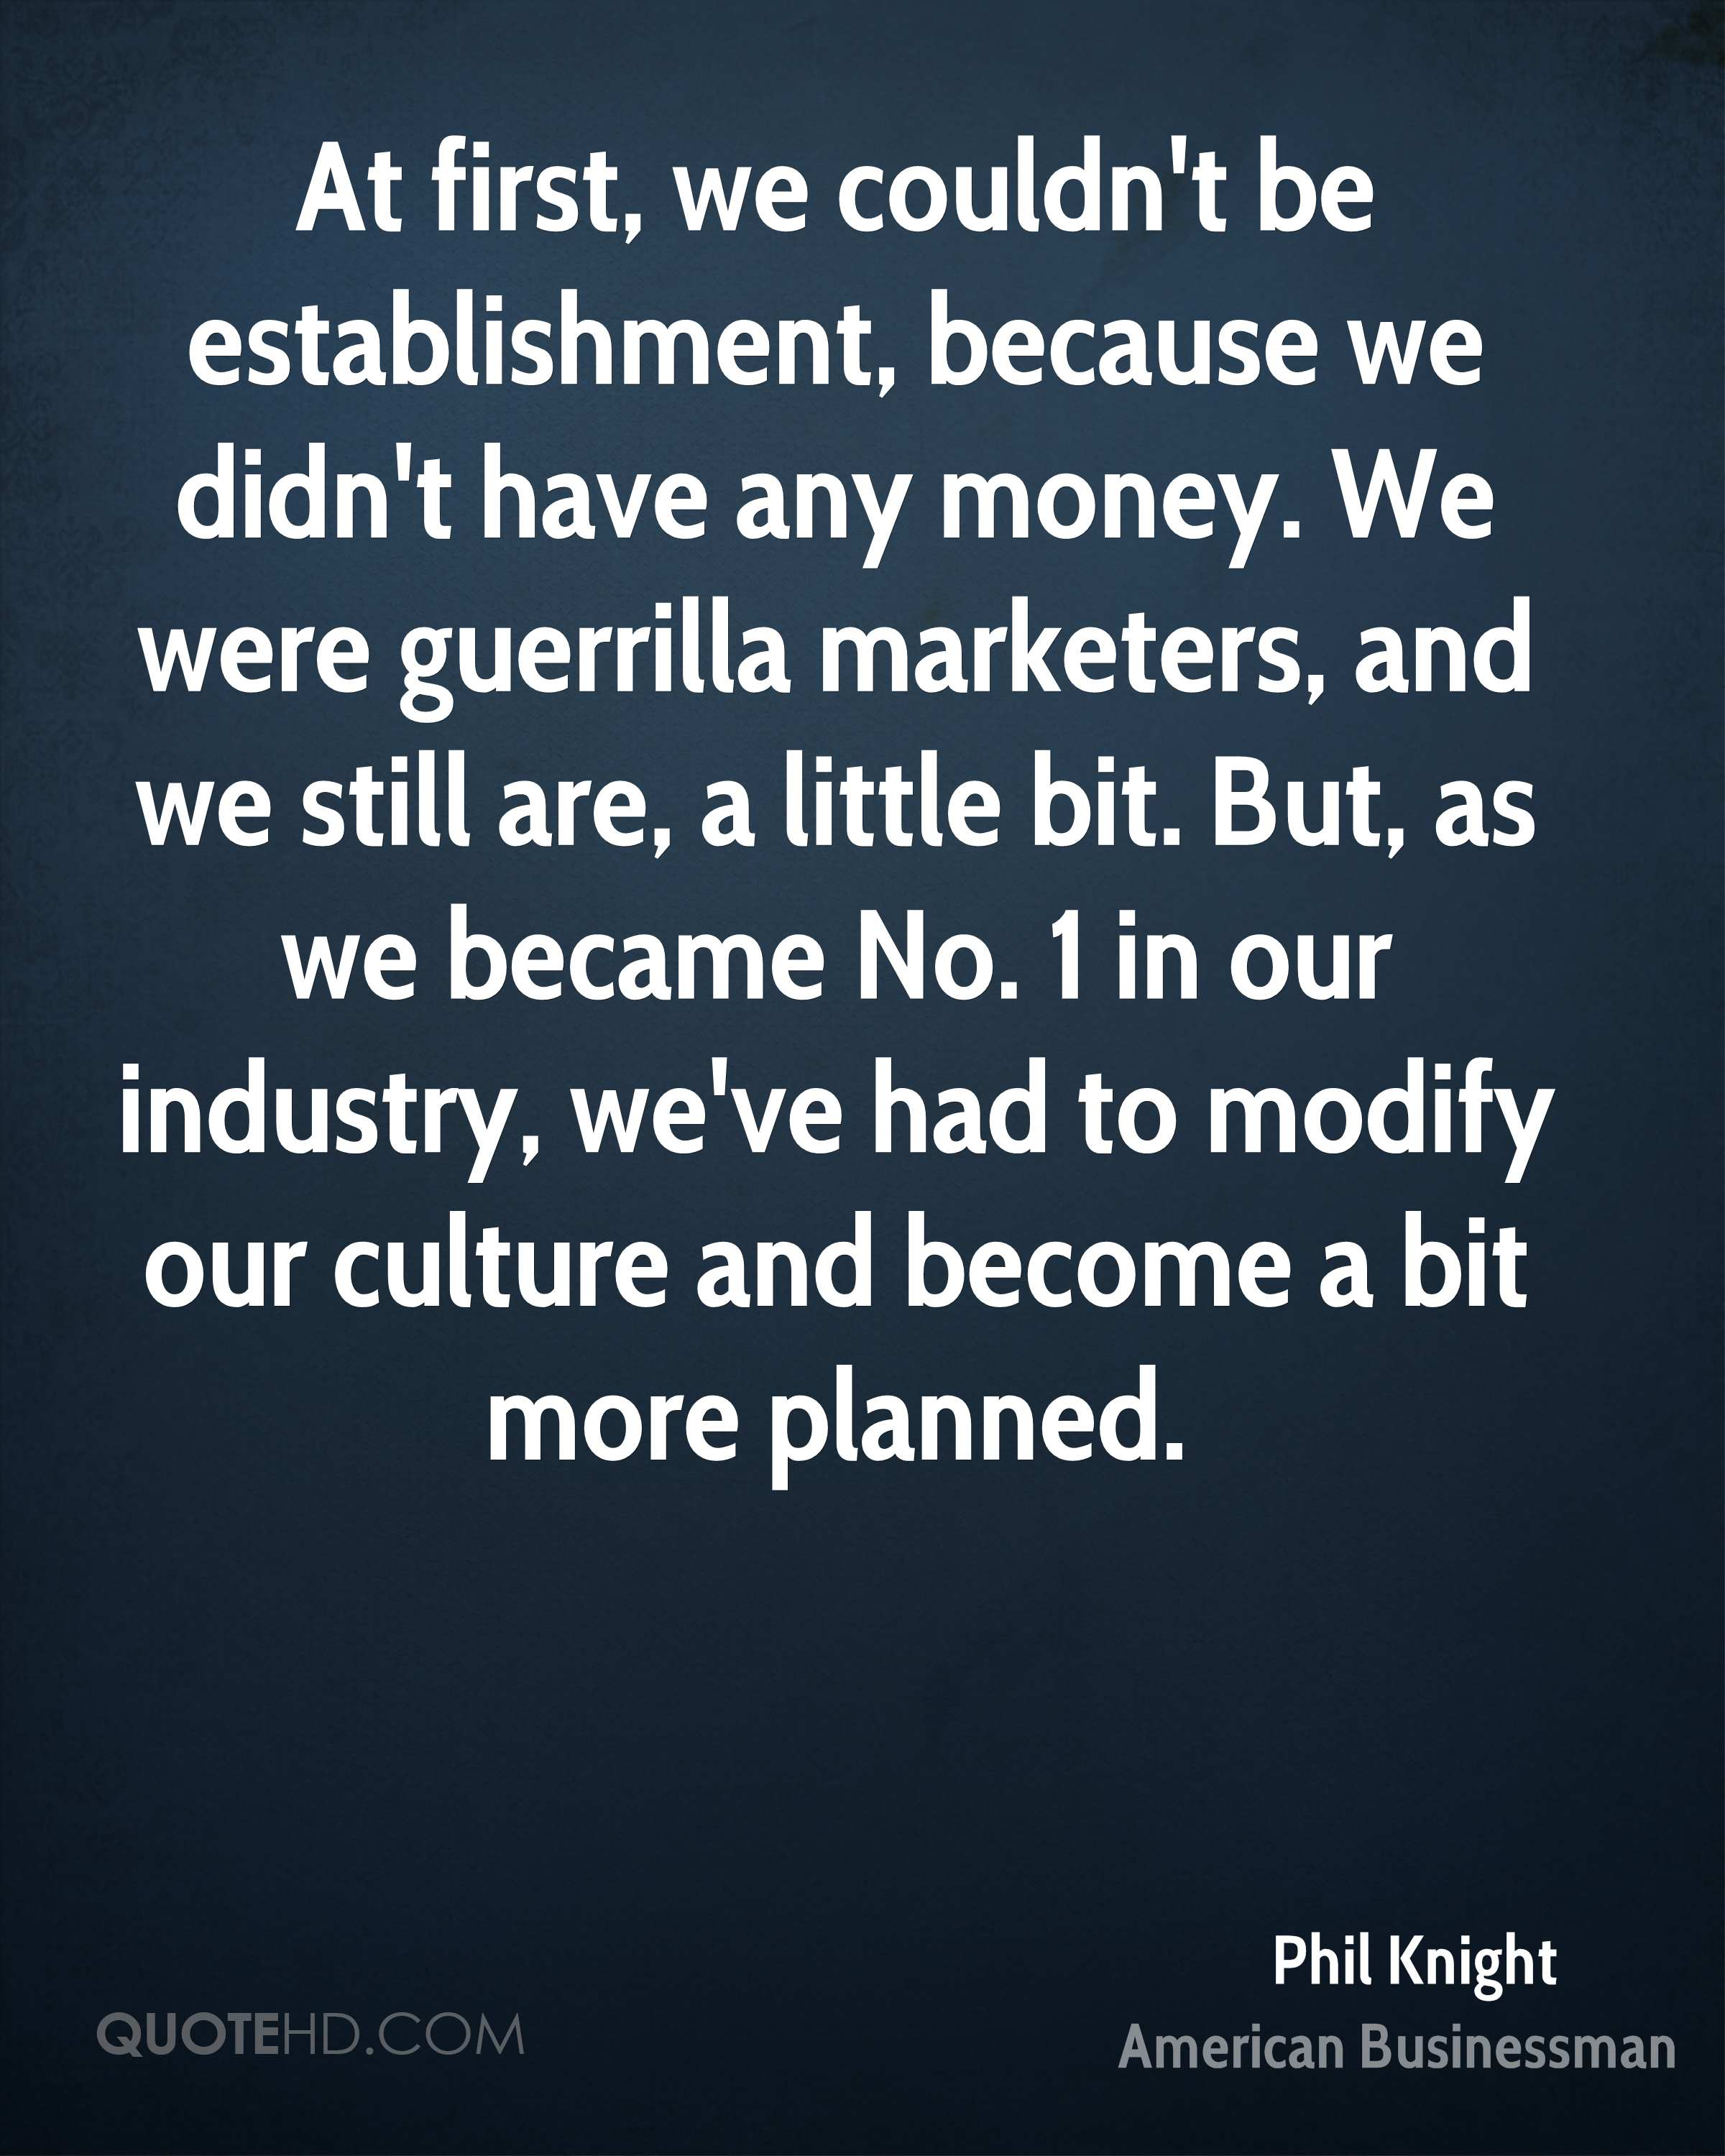 At first, we couldn't be establishment, because we didn't have any money. We were guerrilla marketers, and we still are, a little bit. But, as we became No. 1 in our industry, we've had to modify our culture and become a bit more planned.